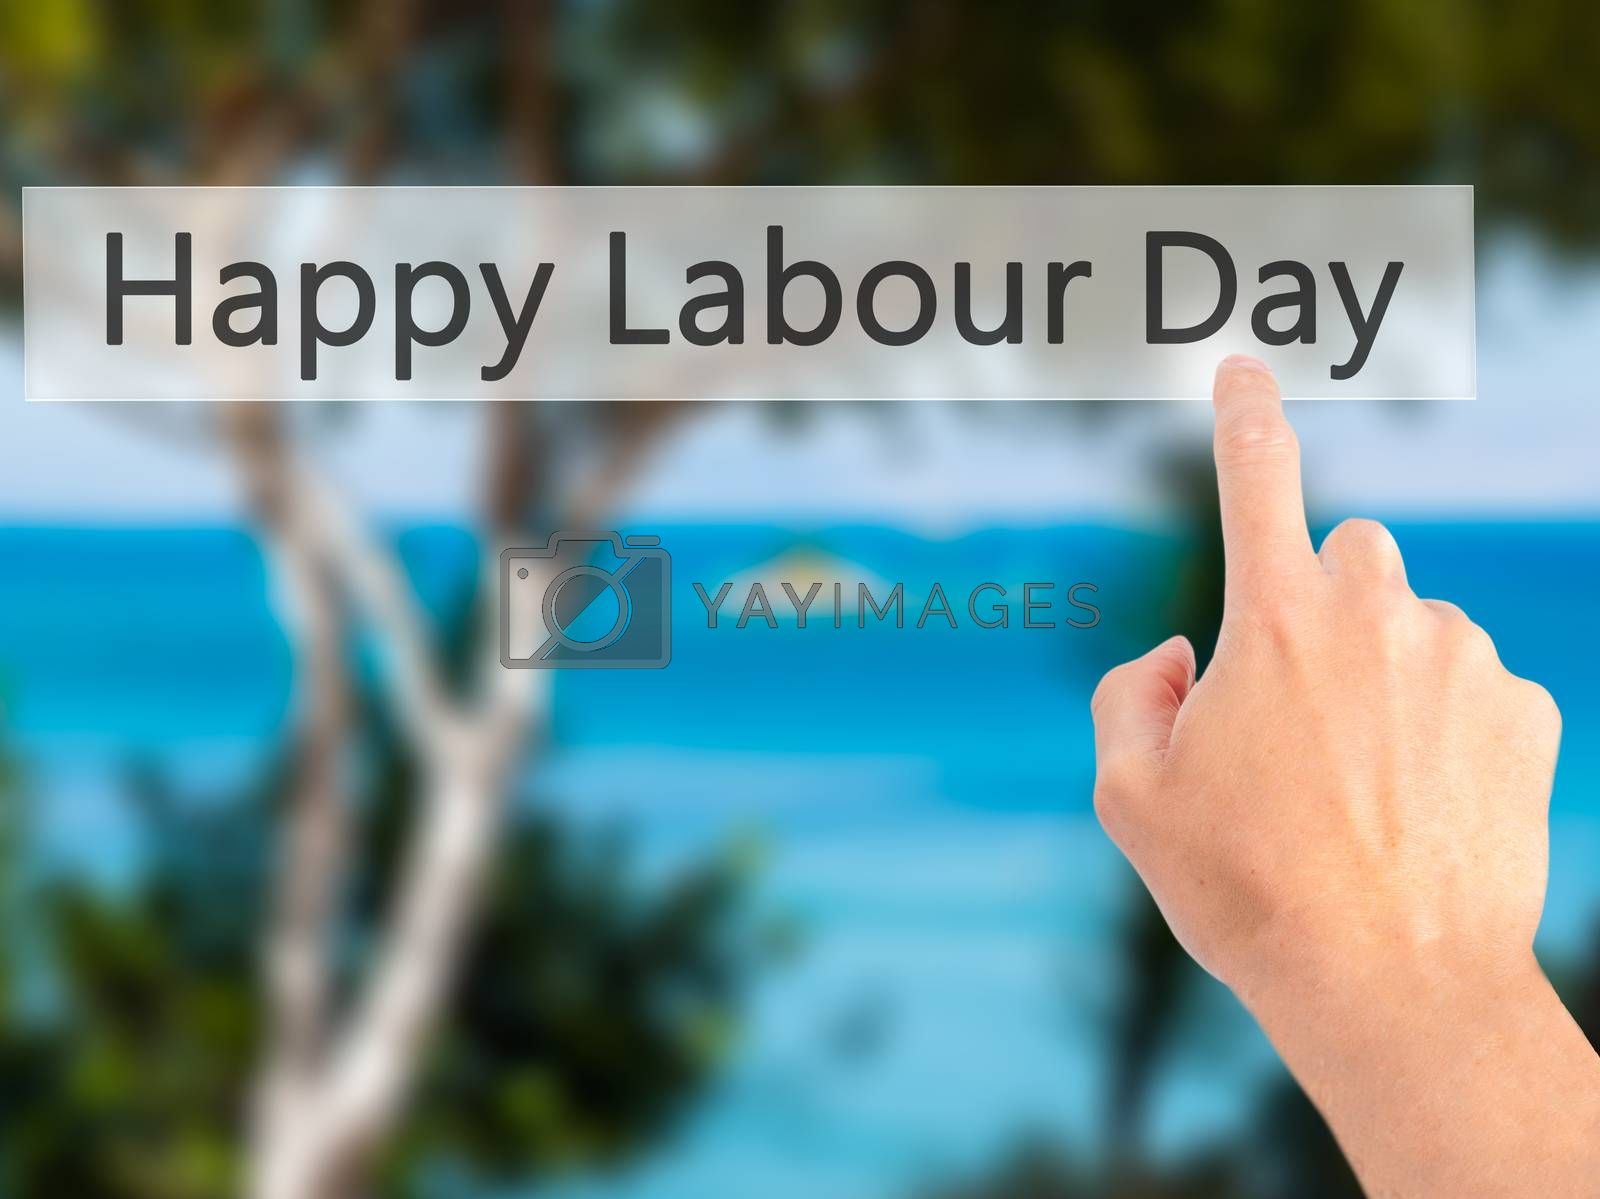 Happy Labour Day - Hand pressing a button on blurred background  by netsay.net